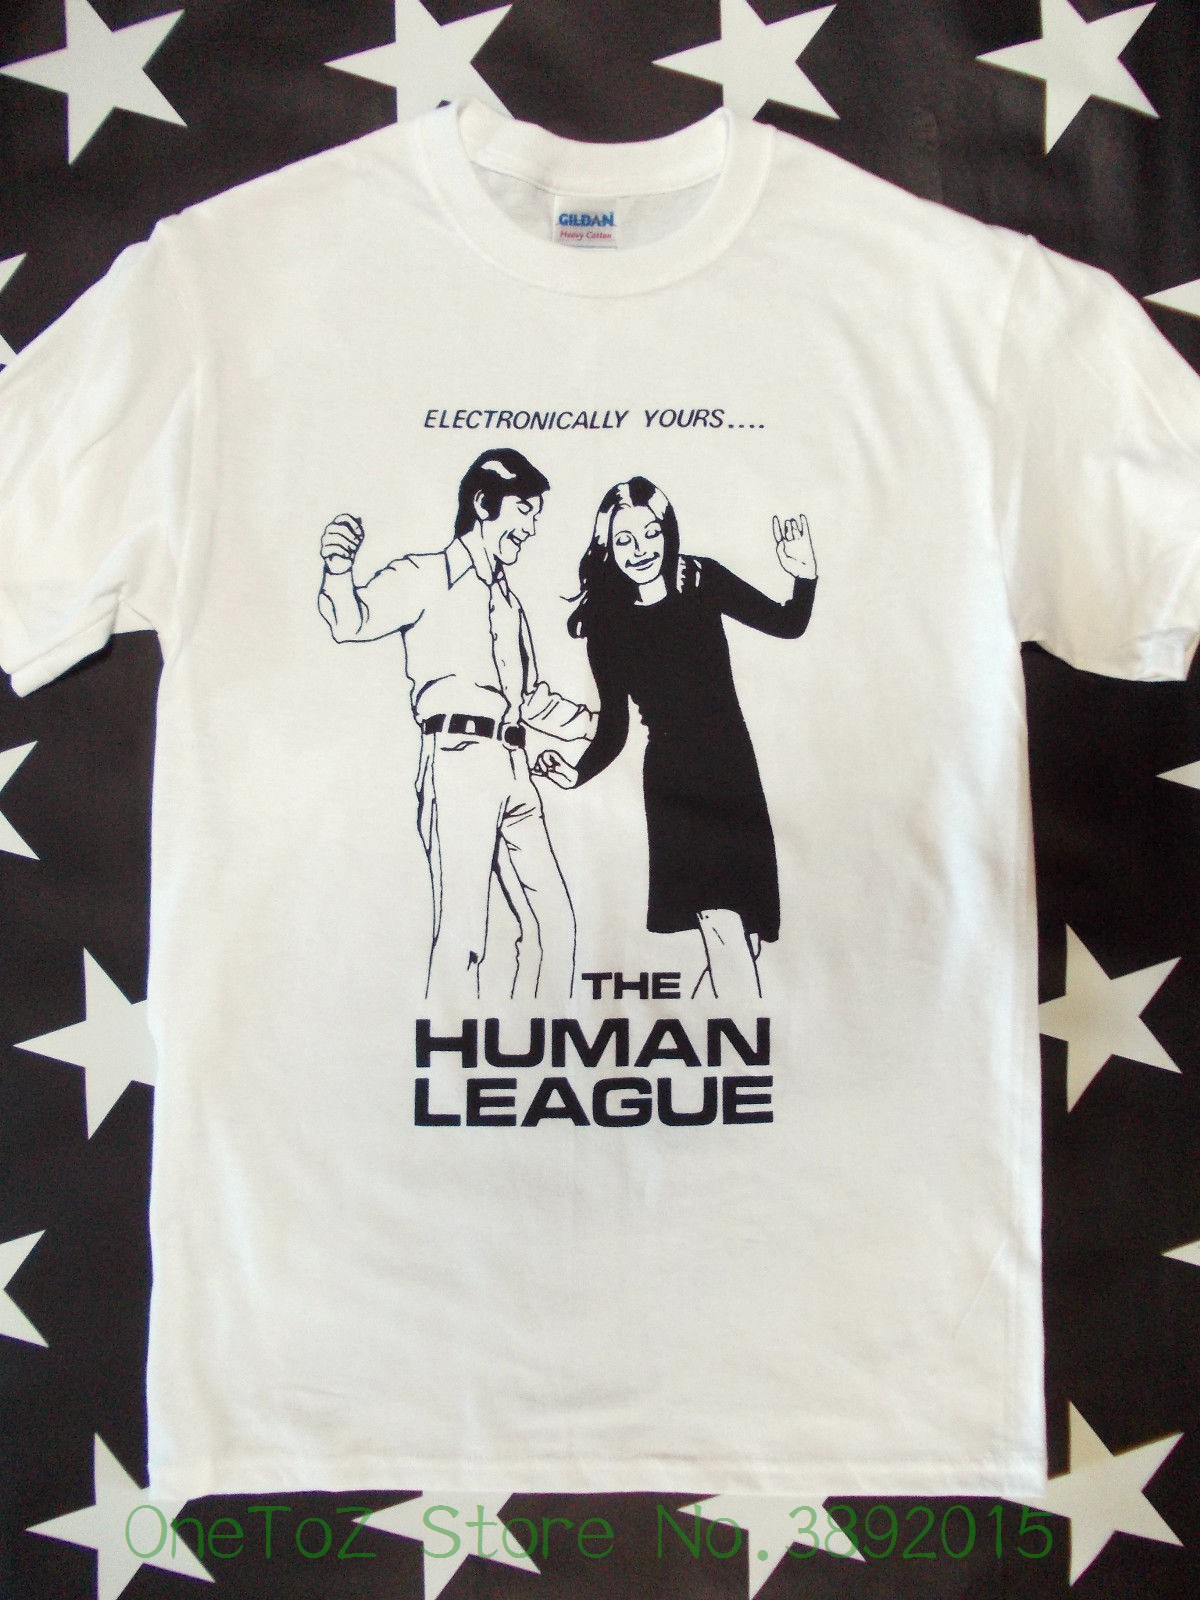 Tshirt Men 2018 New The League T-shirt Screen Printed Fast Records Electronic Punk Heaven 17